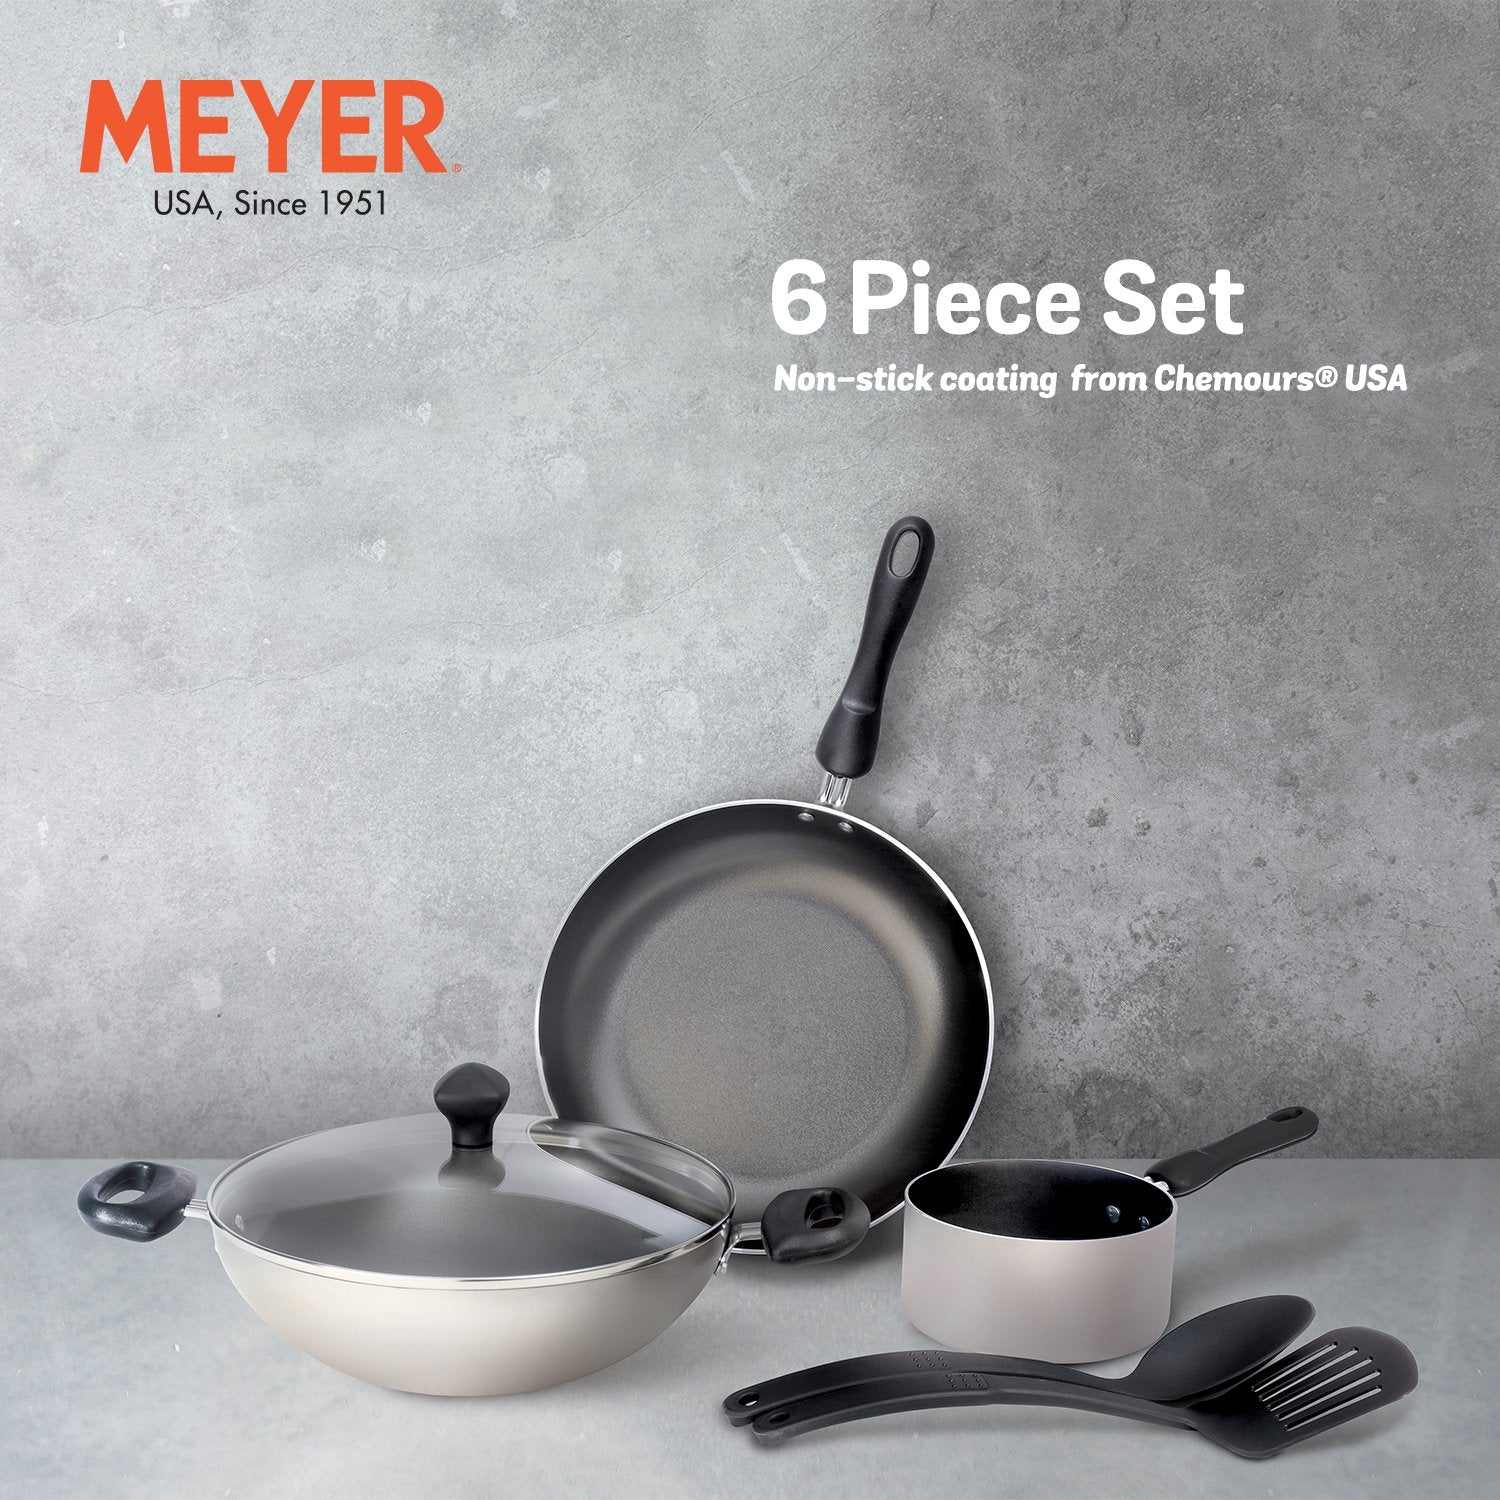 Meyer Non-Stick 6pcs Cookware Set (14cm Milkpan+26cm Frypan+26cm Kadai+Nylon Turner+Nylon Spoon)